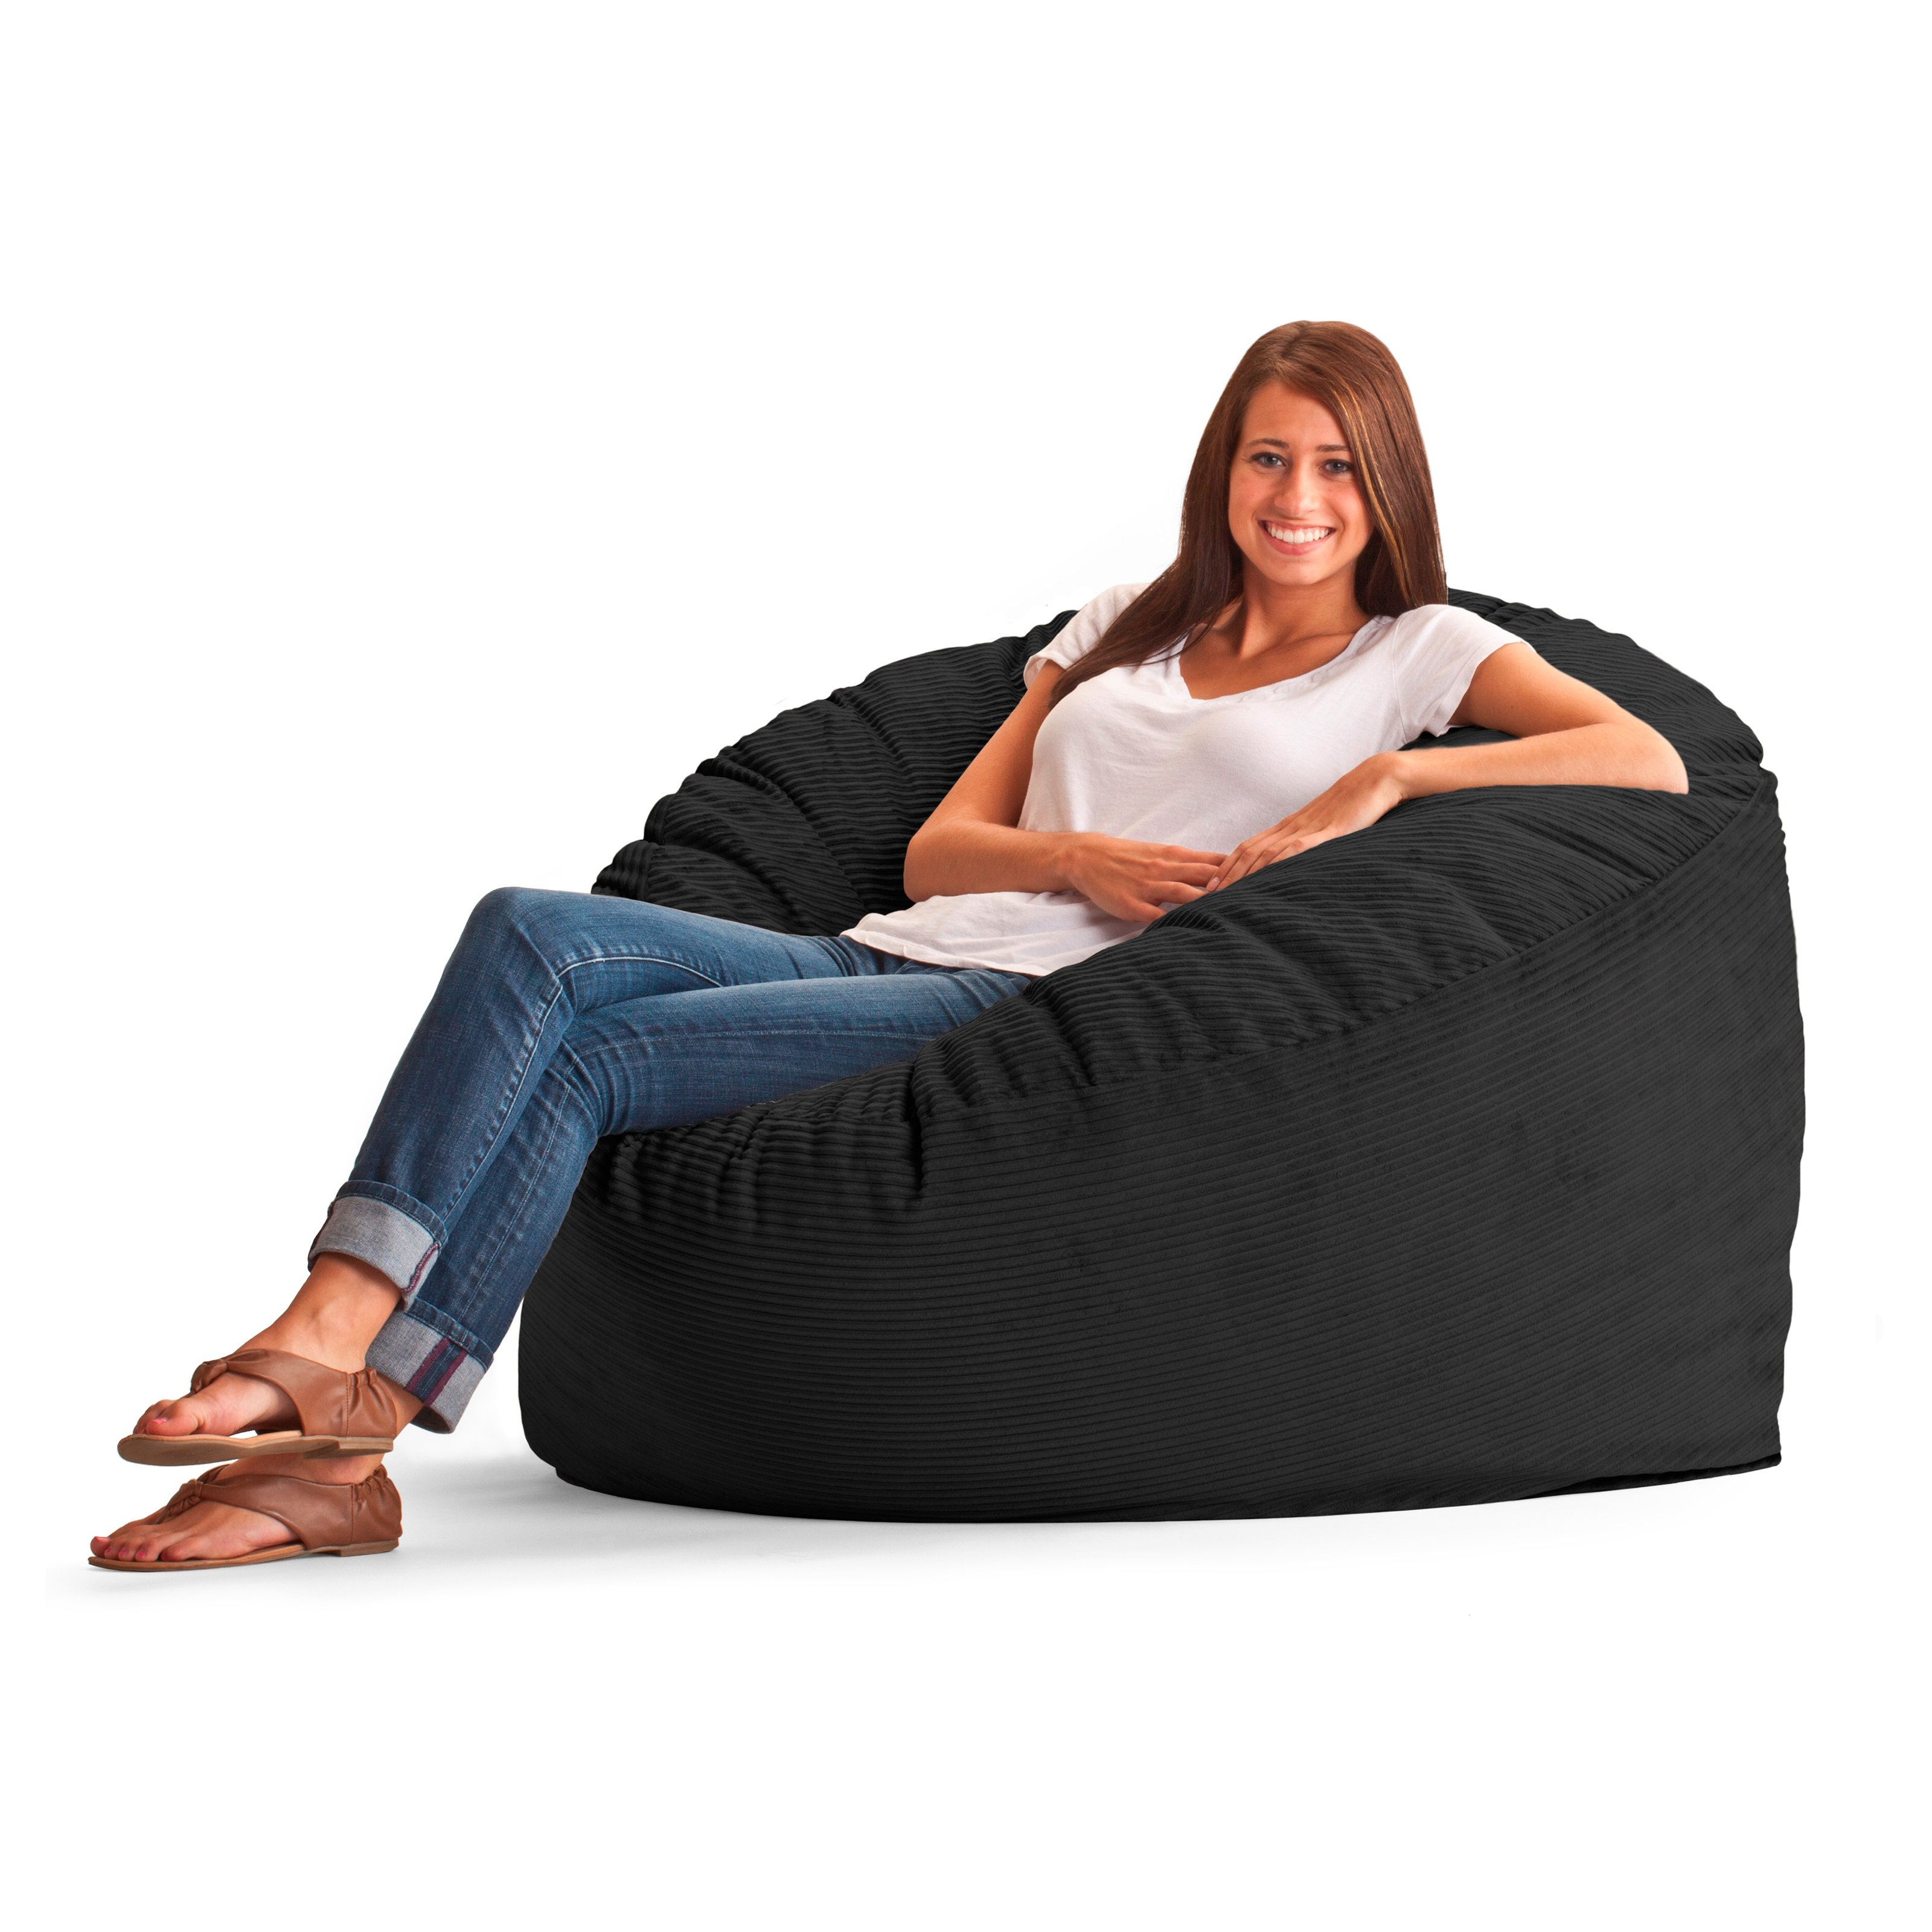 Large 4 039 Fuf Comfort Suede Bean Bag